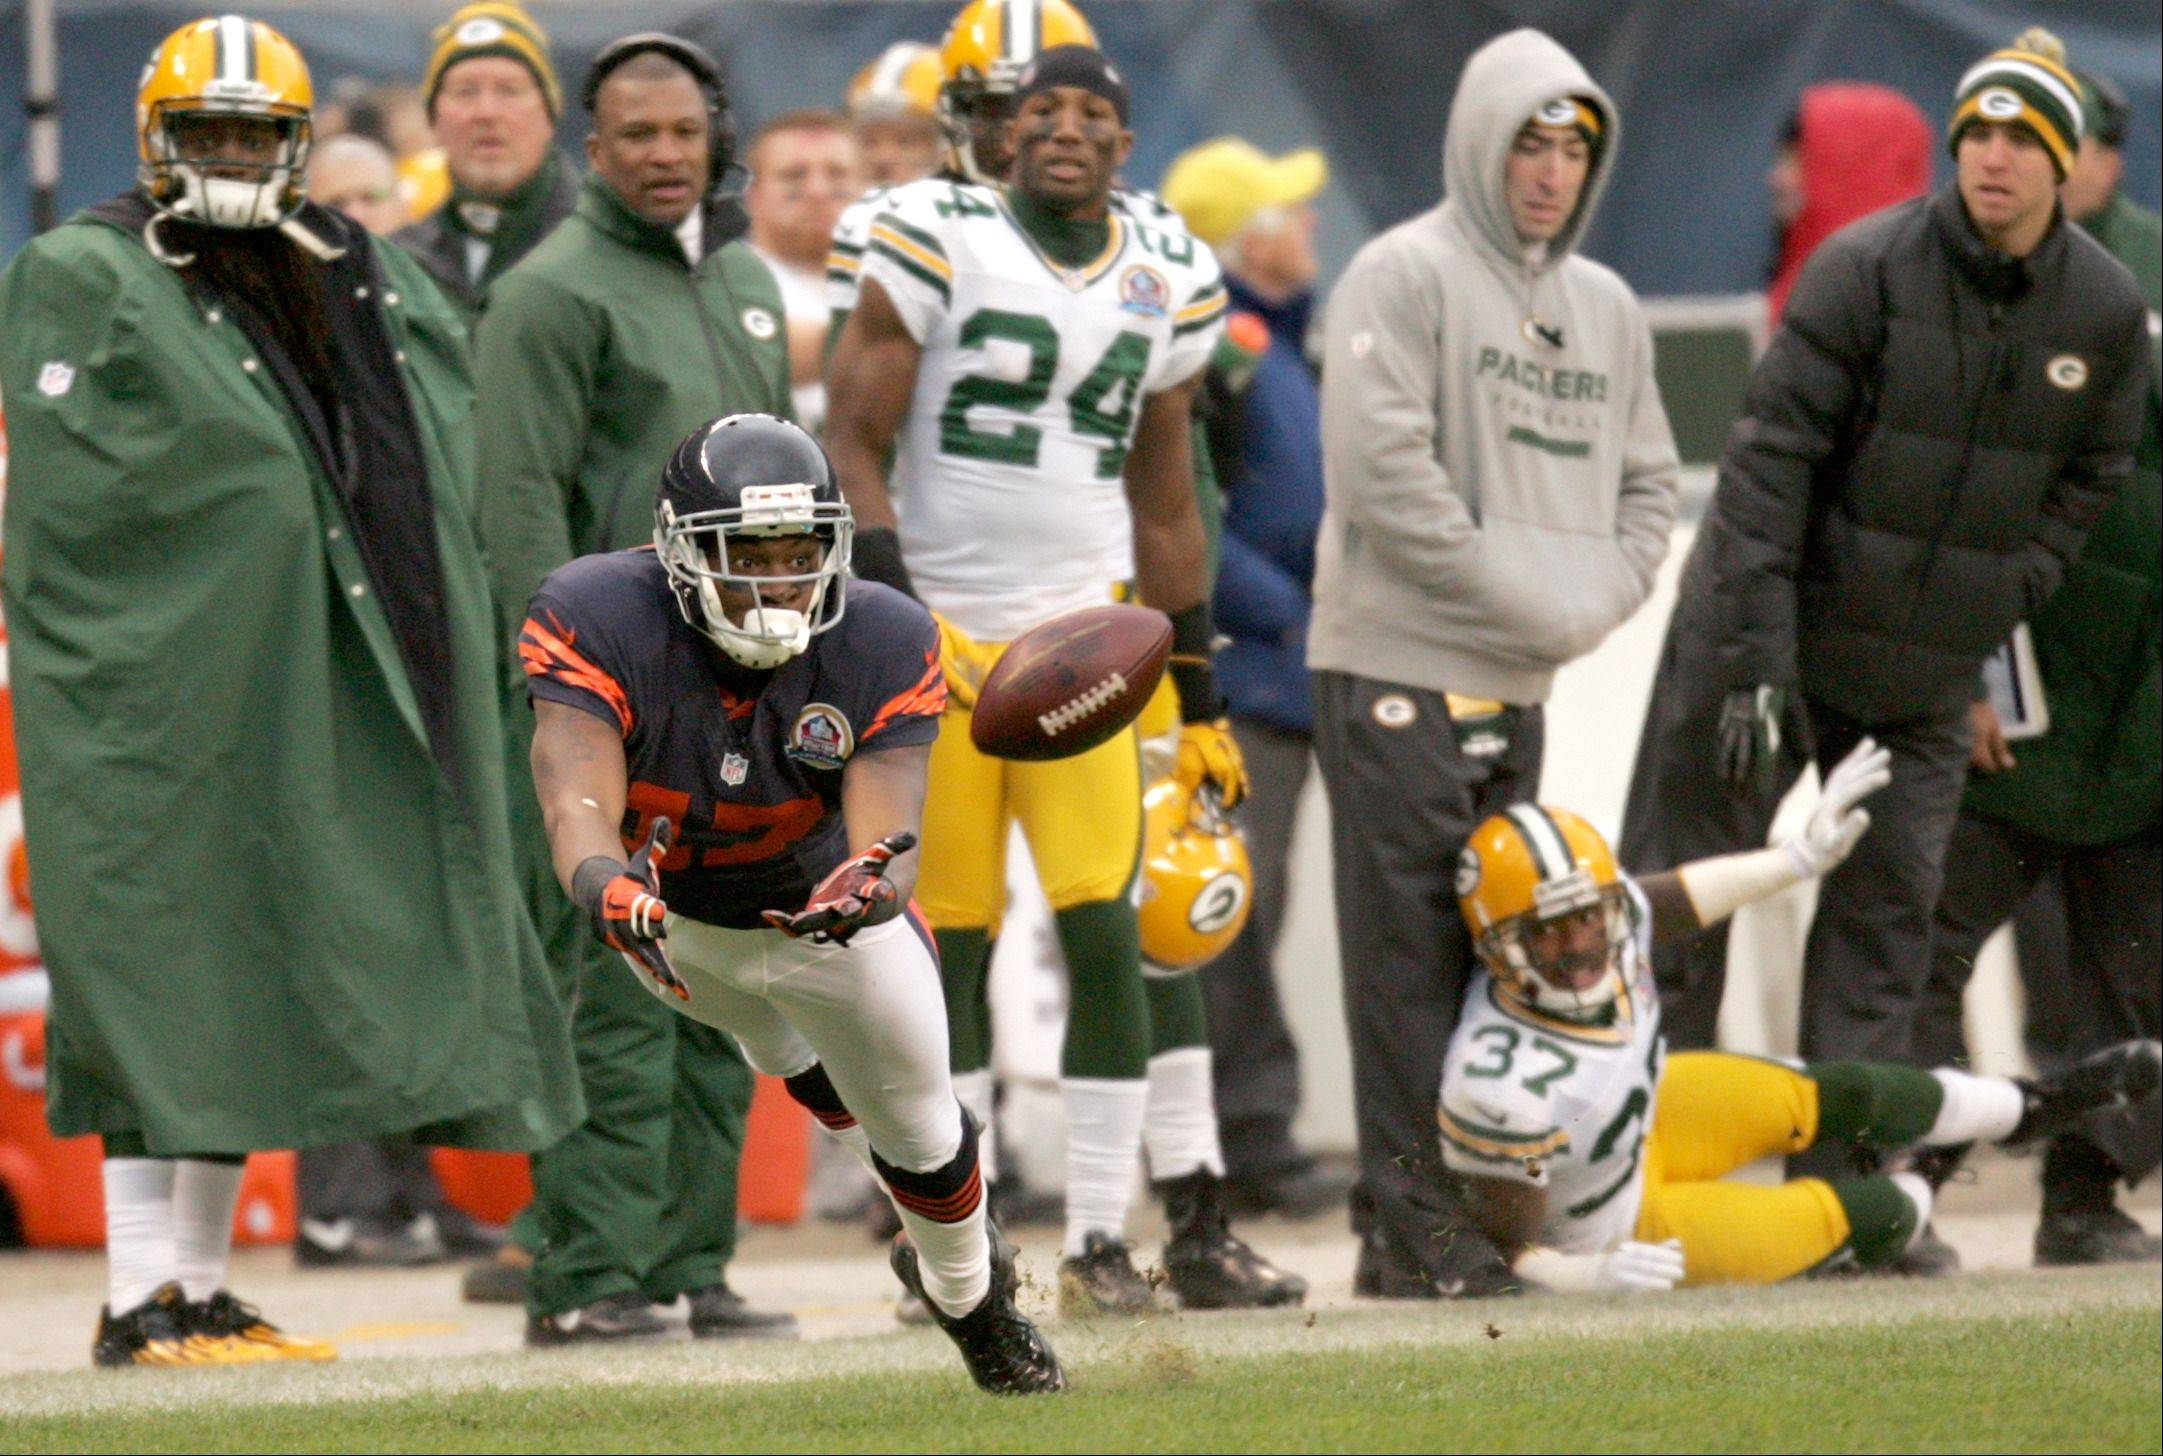 Wide receiver Alshon Jeffery is one of 28 original Bears on the roster, joining the team as a 2012 draft pick.